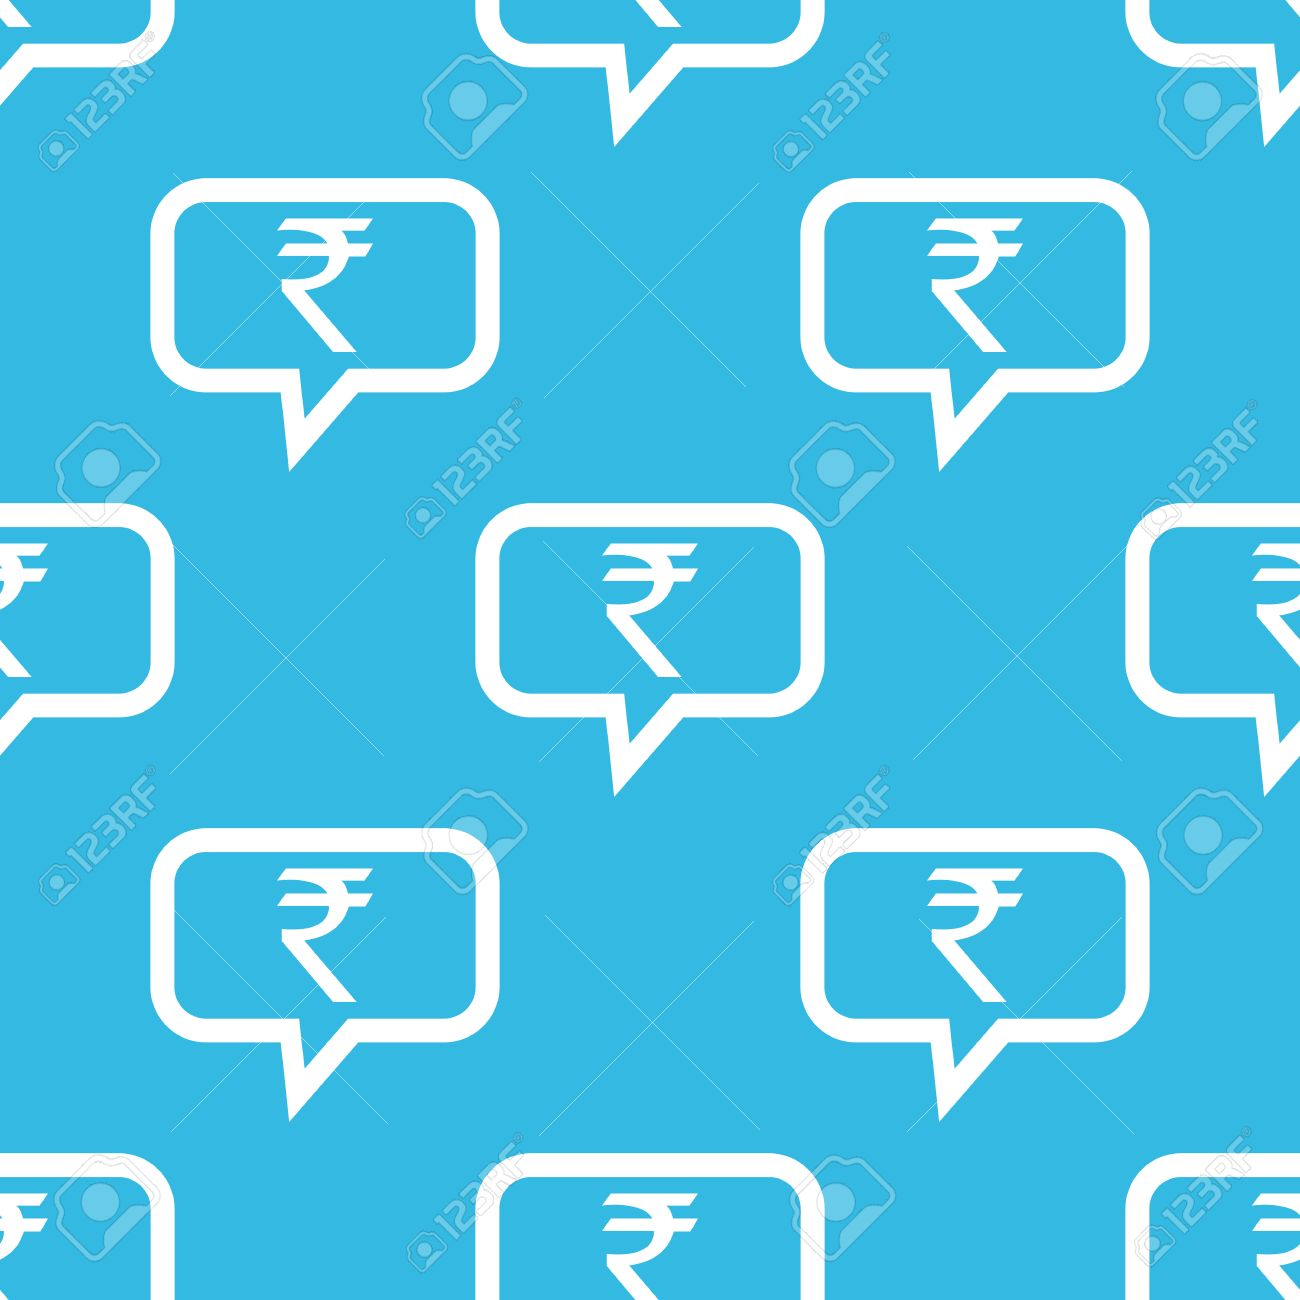 Indian Rupee Symbol In Chat Bubble Repeated On Blue Background